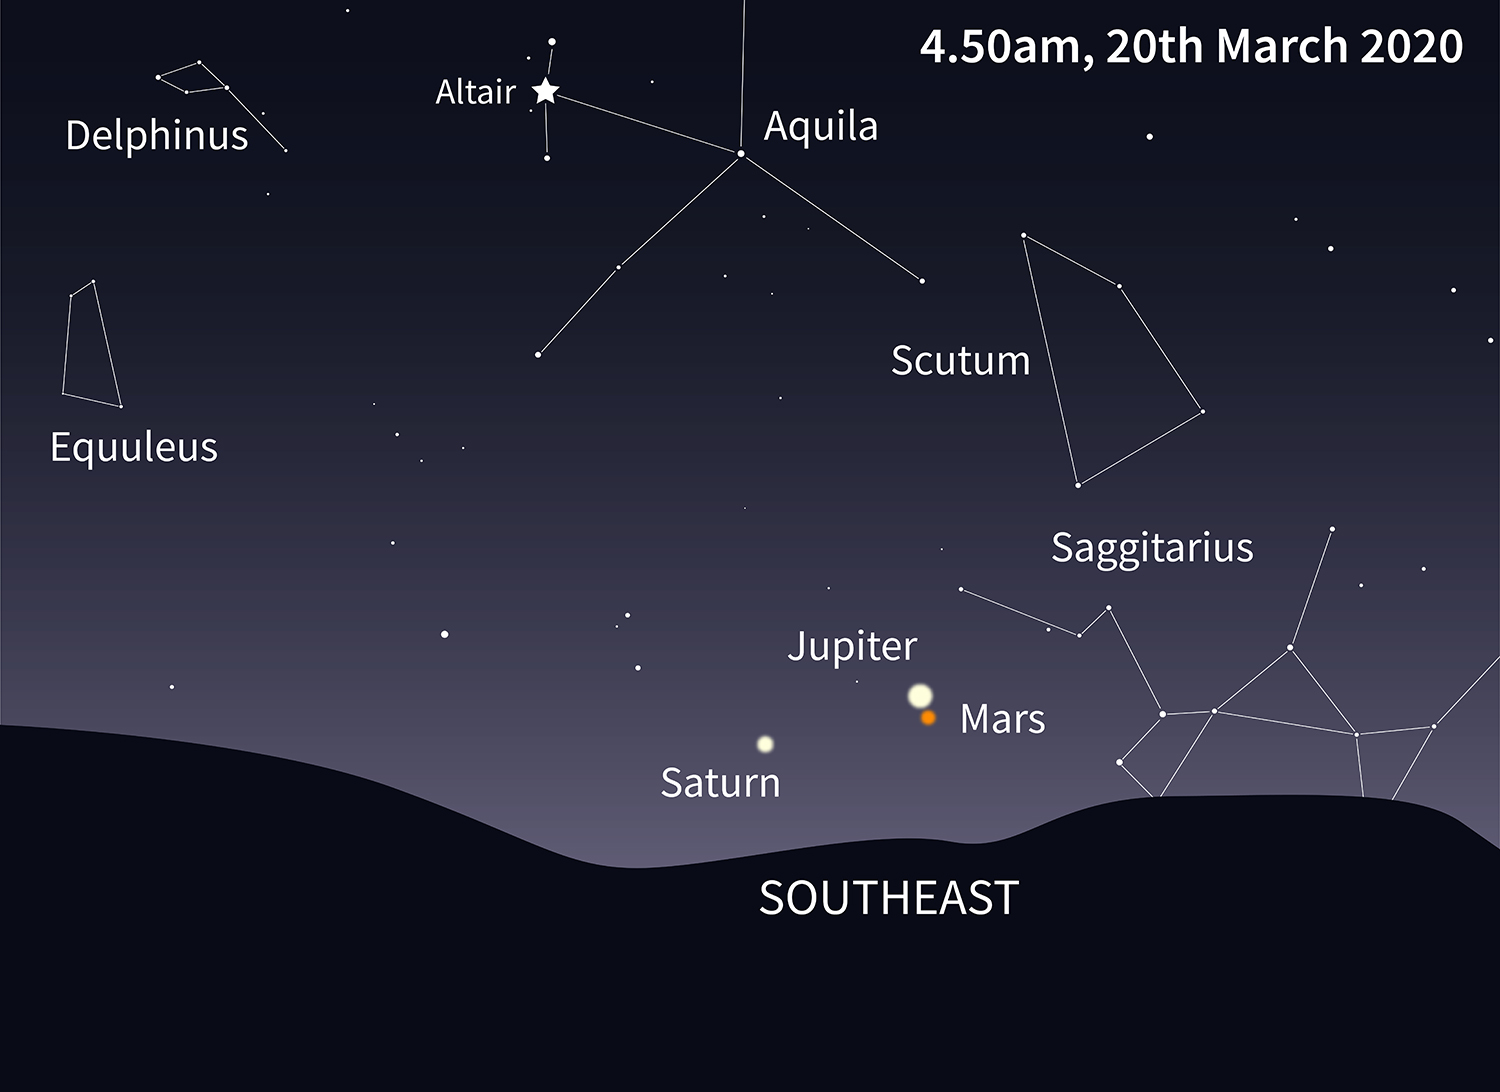 Conjunction of Saturn, Mars and Jupiter.